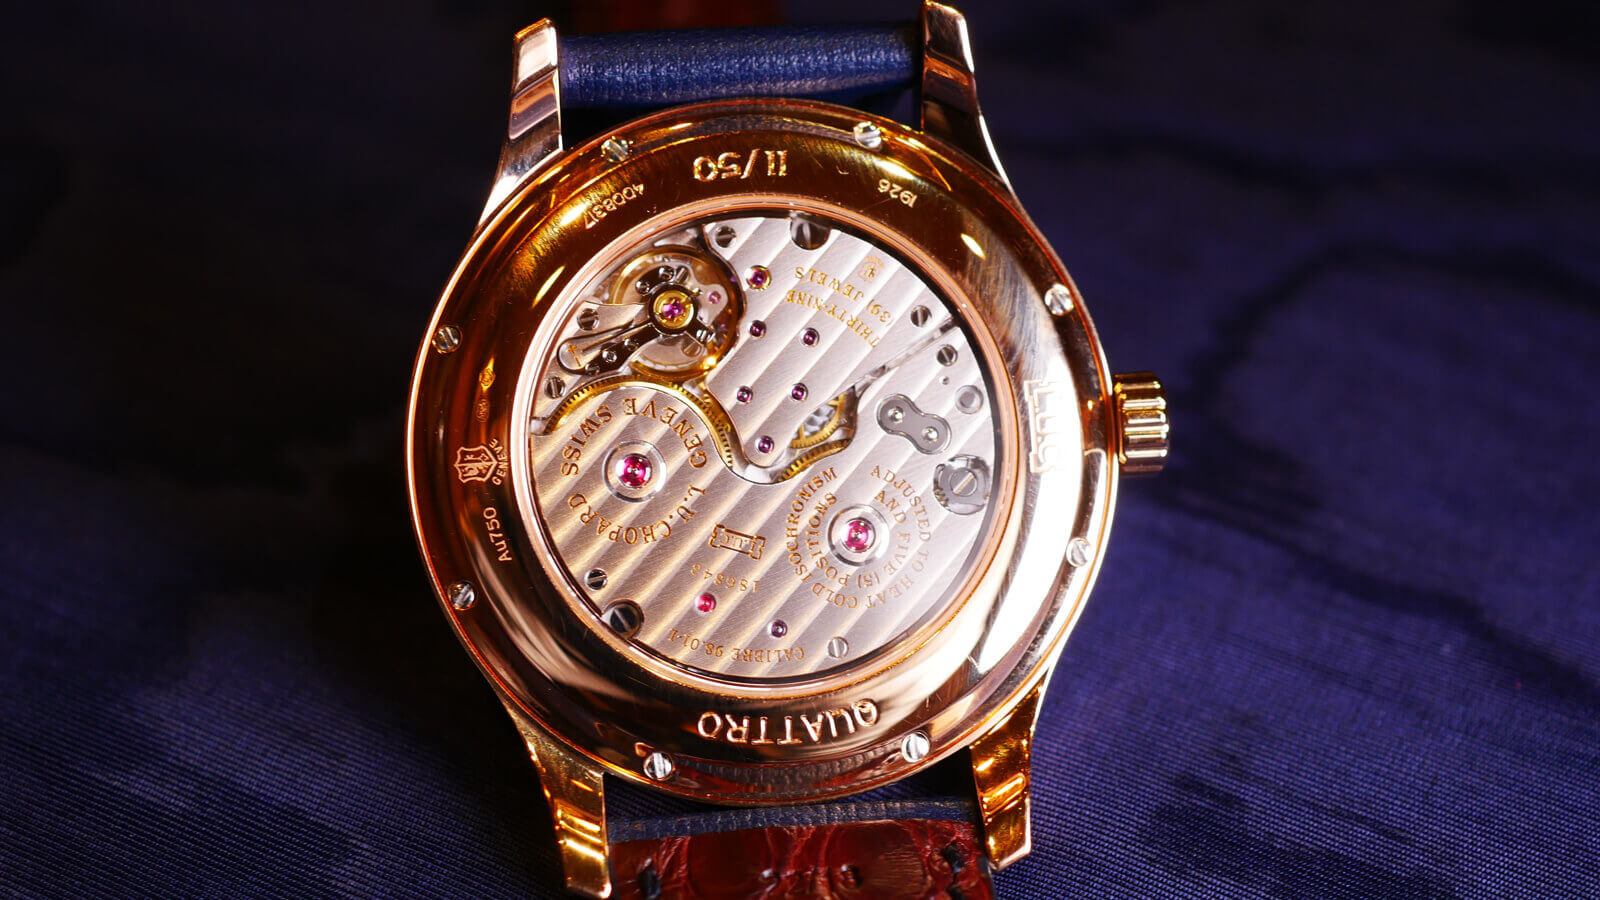 Chopard LUC Quattro - hand-wound watch with 9 day power reserve and Poincon de Geneve